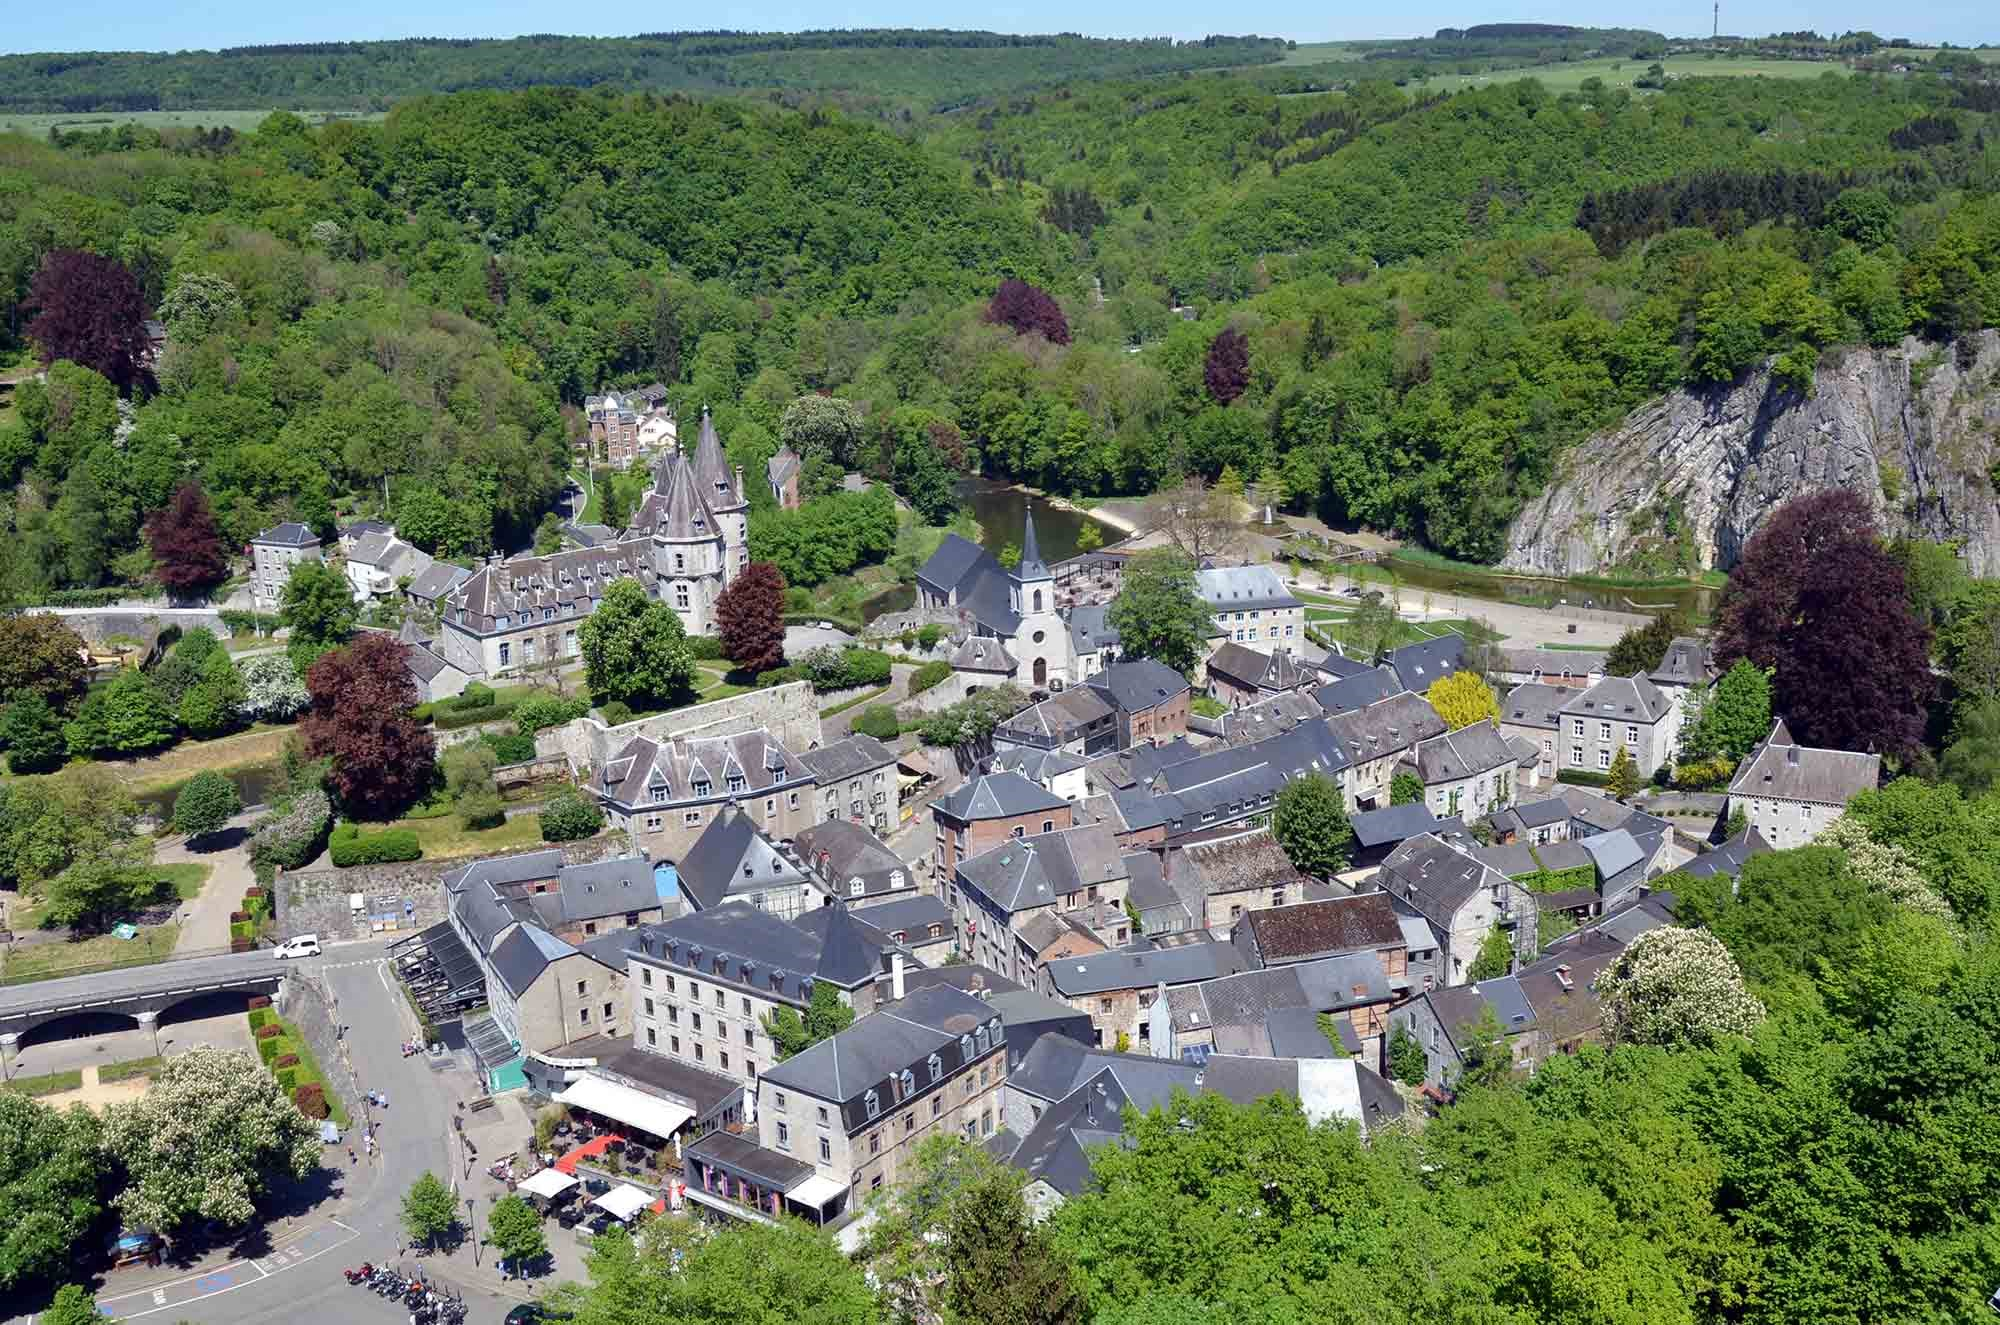 ardenne residences durbuy 6940 region landscapes city aerial image